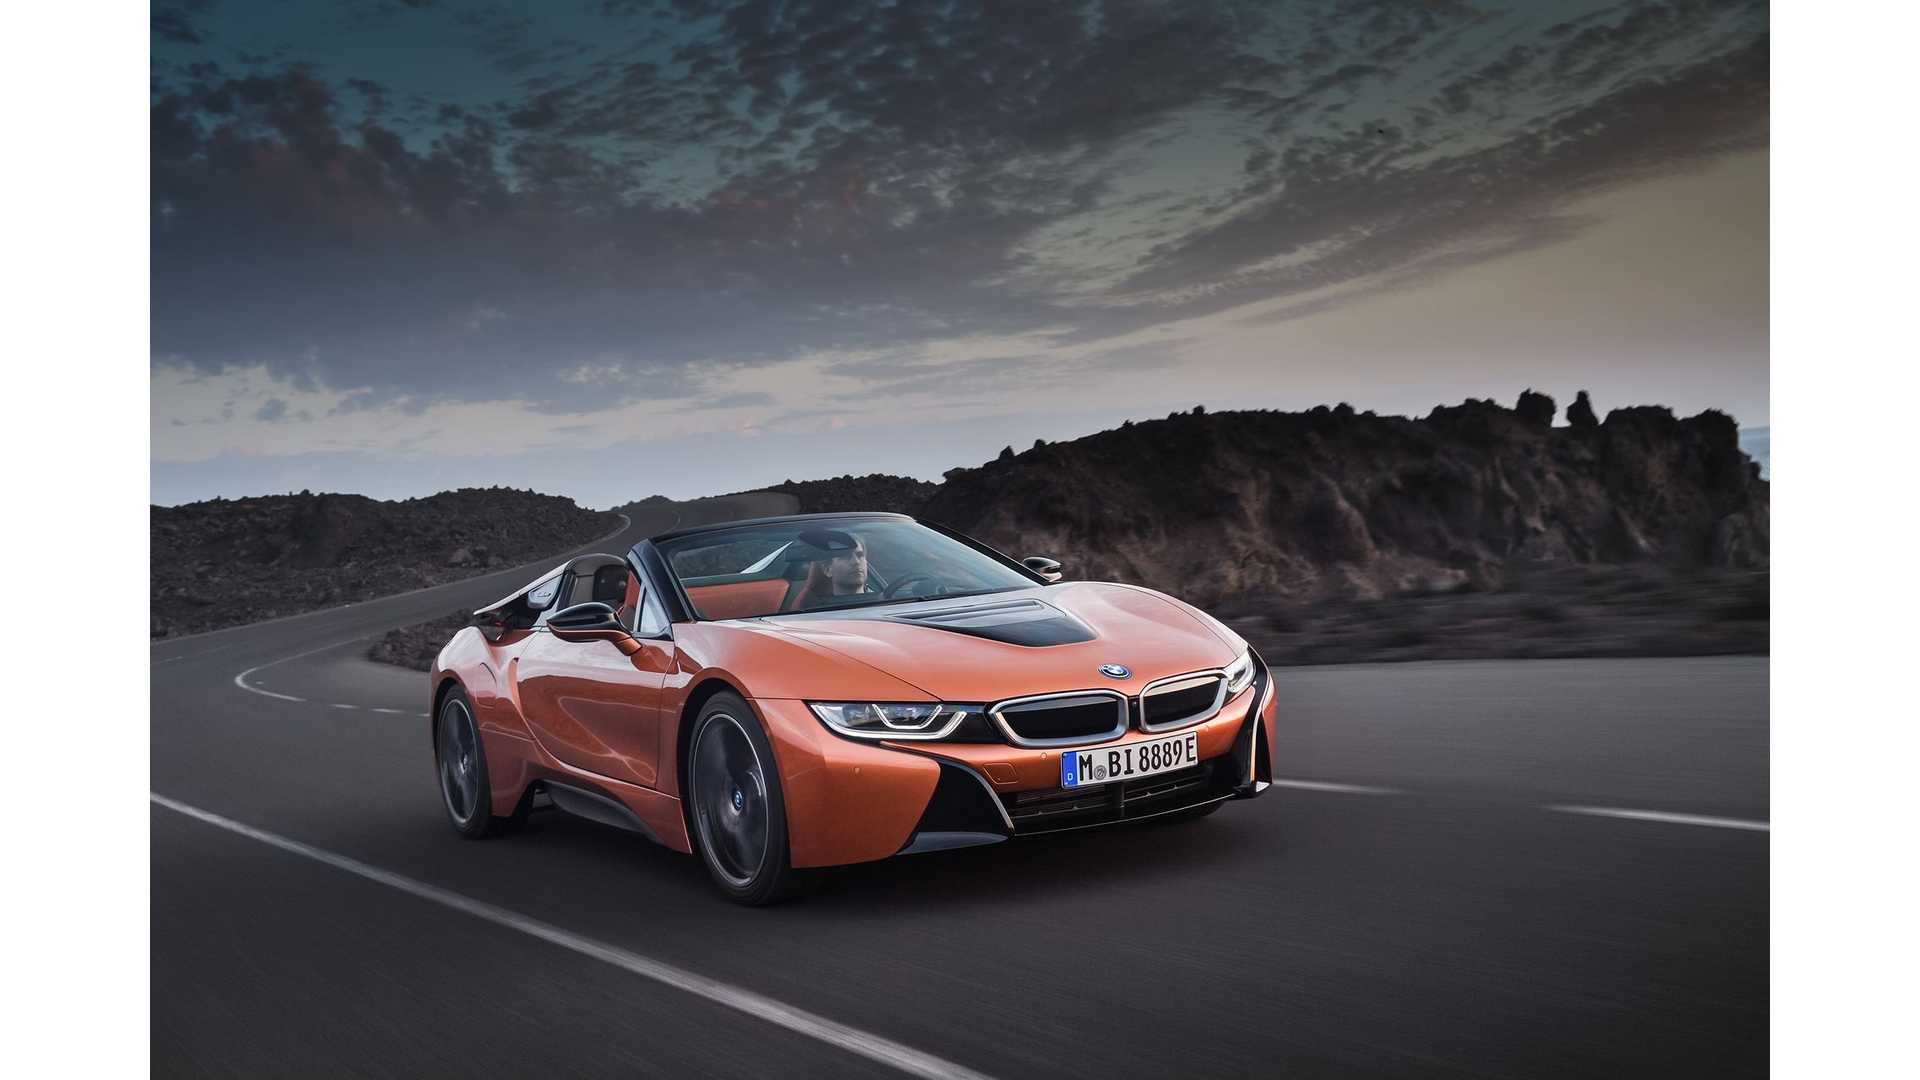 Bmw I8 Roadster First Drive Review Top Down Electric Motoring